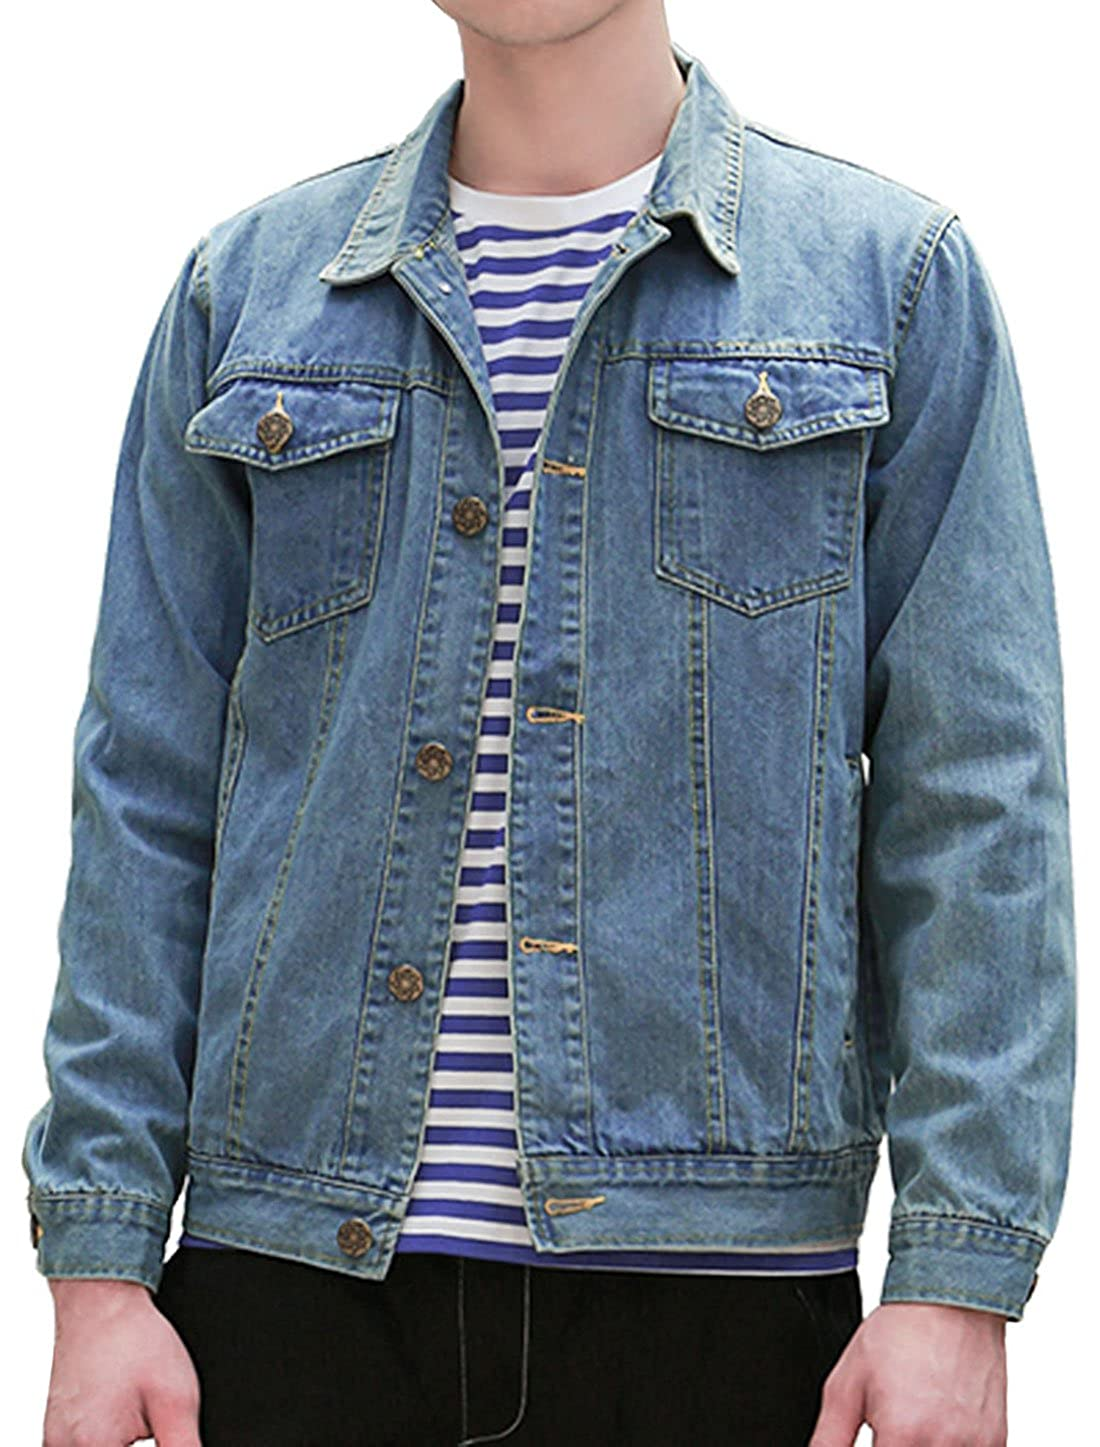 uxcell Men Single Breast Flap Pocket Long Sleeves Washed Classic Denim Jacket g17030100ux0048